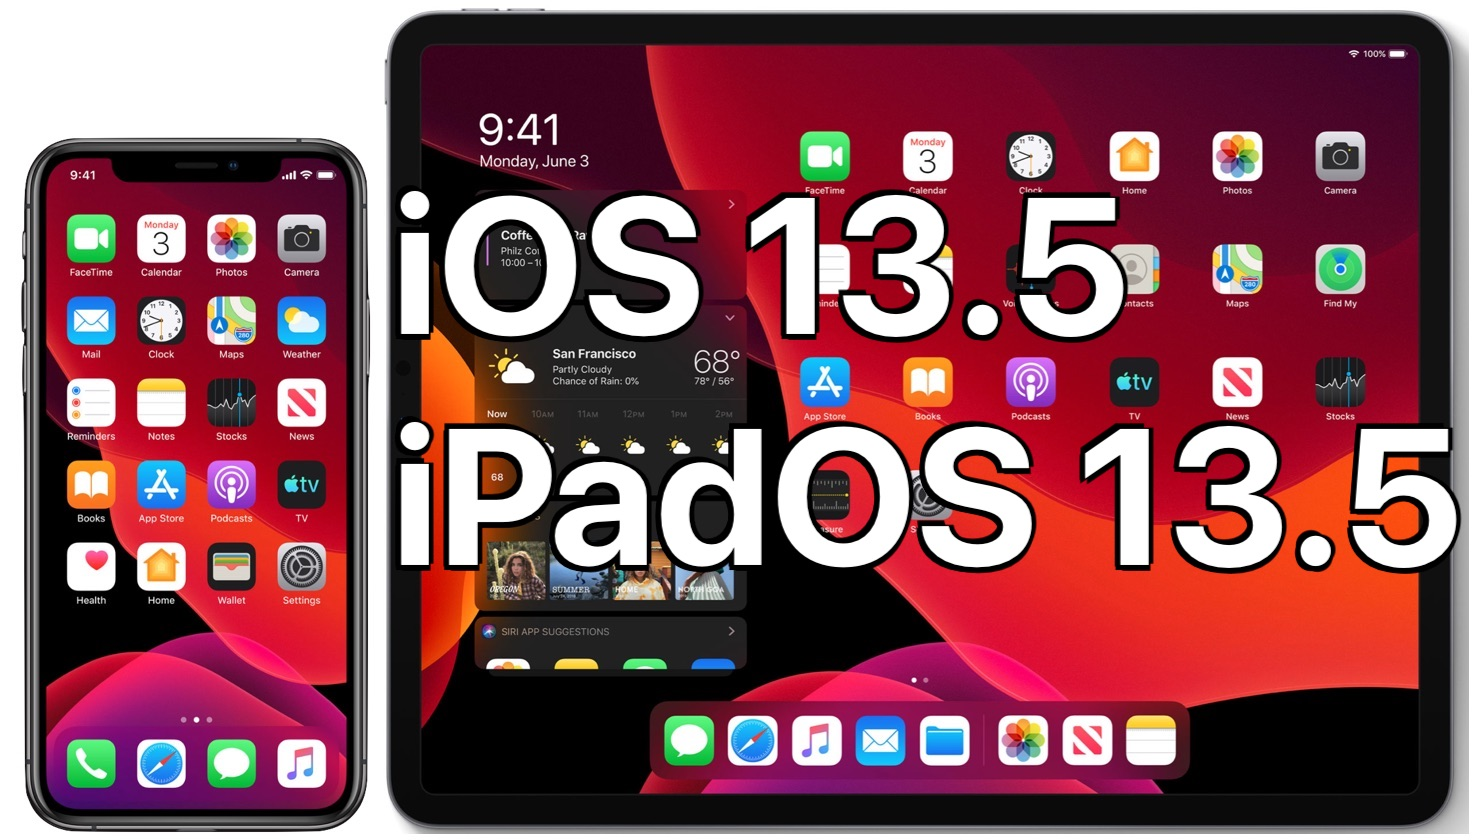 iOS 13.5 and iPadOS 13.5